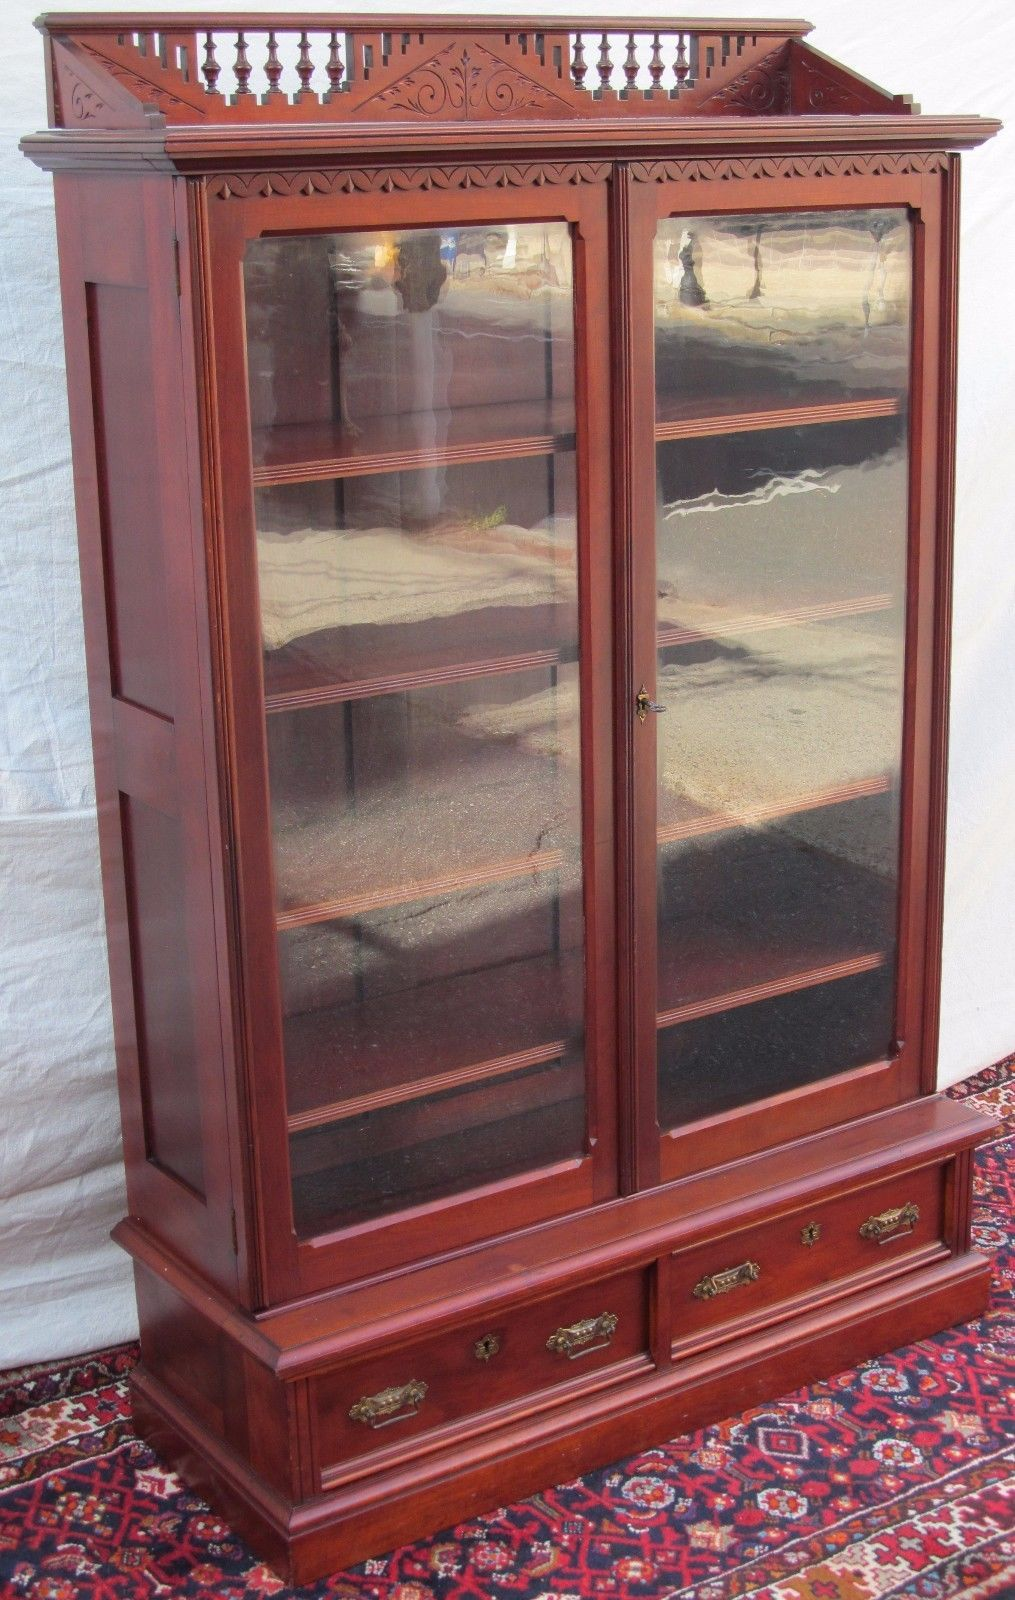 EASTLAKE VICTORIAN CHERRY BOOKCASE WITH NICELY DEFINED